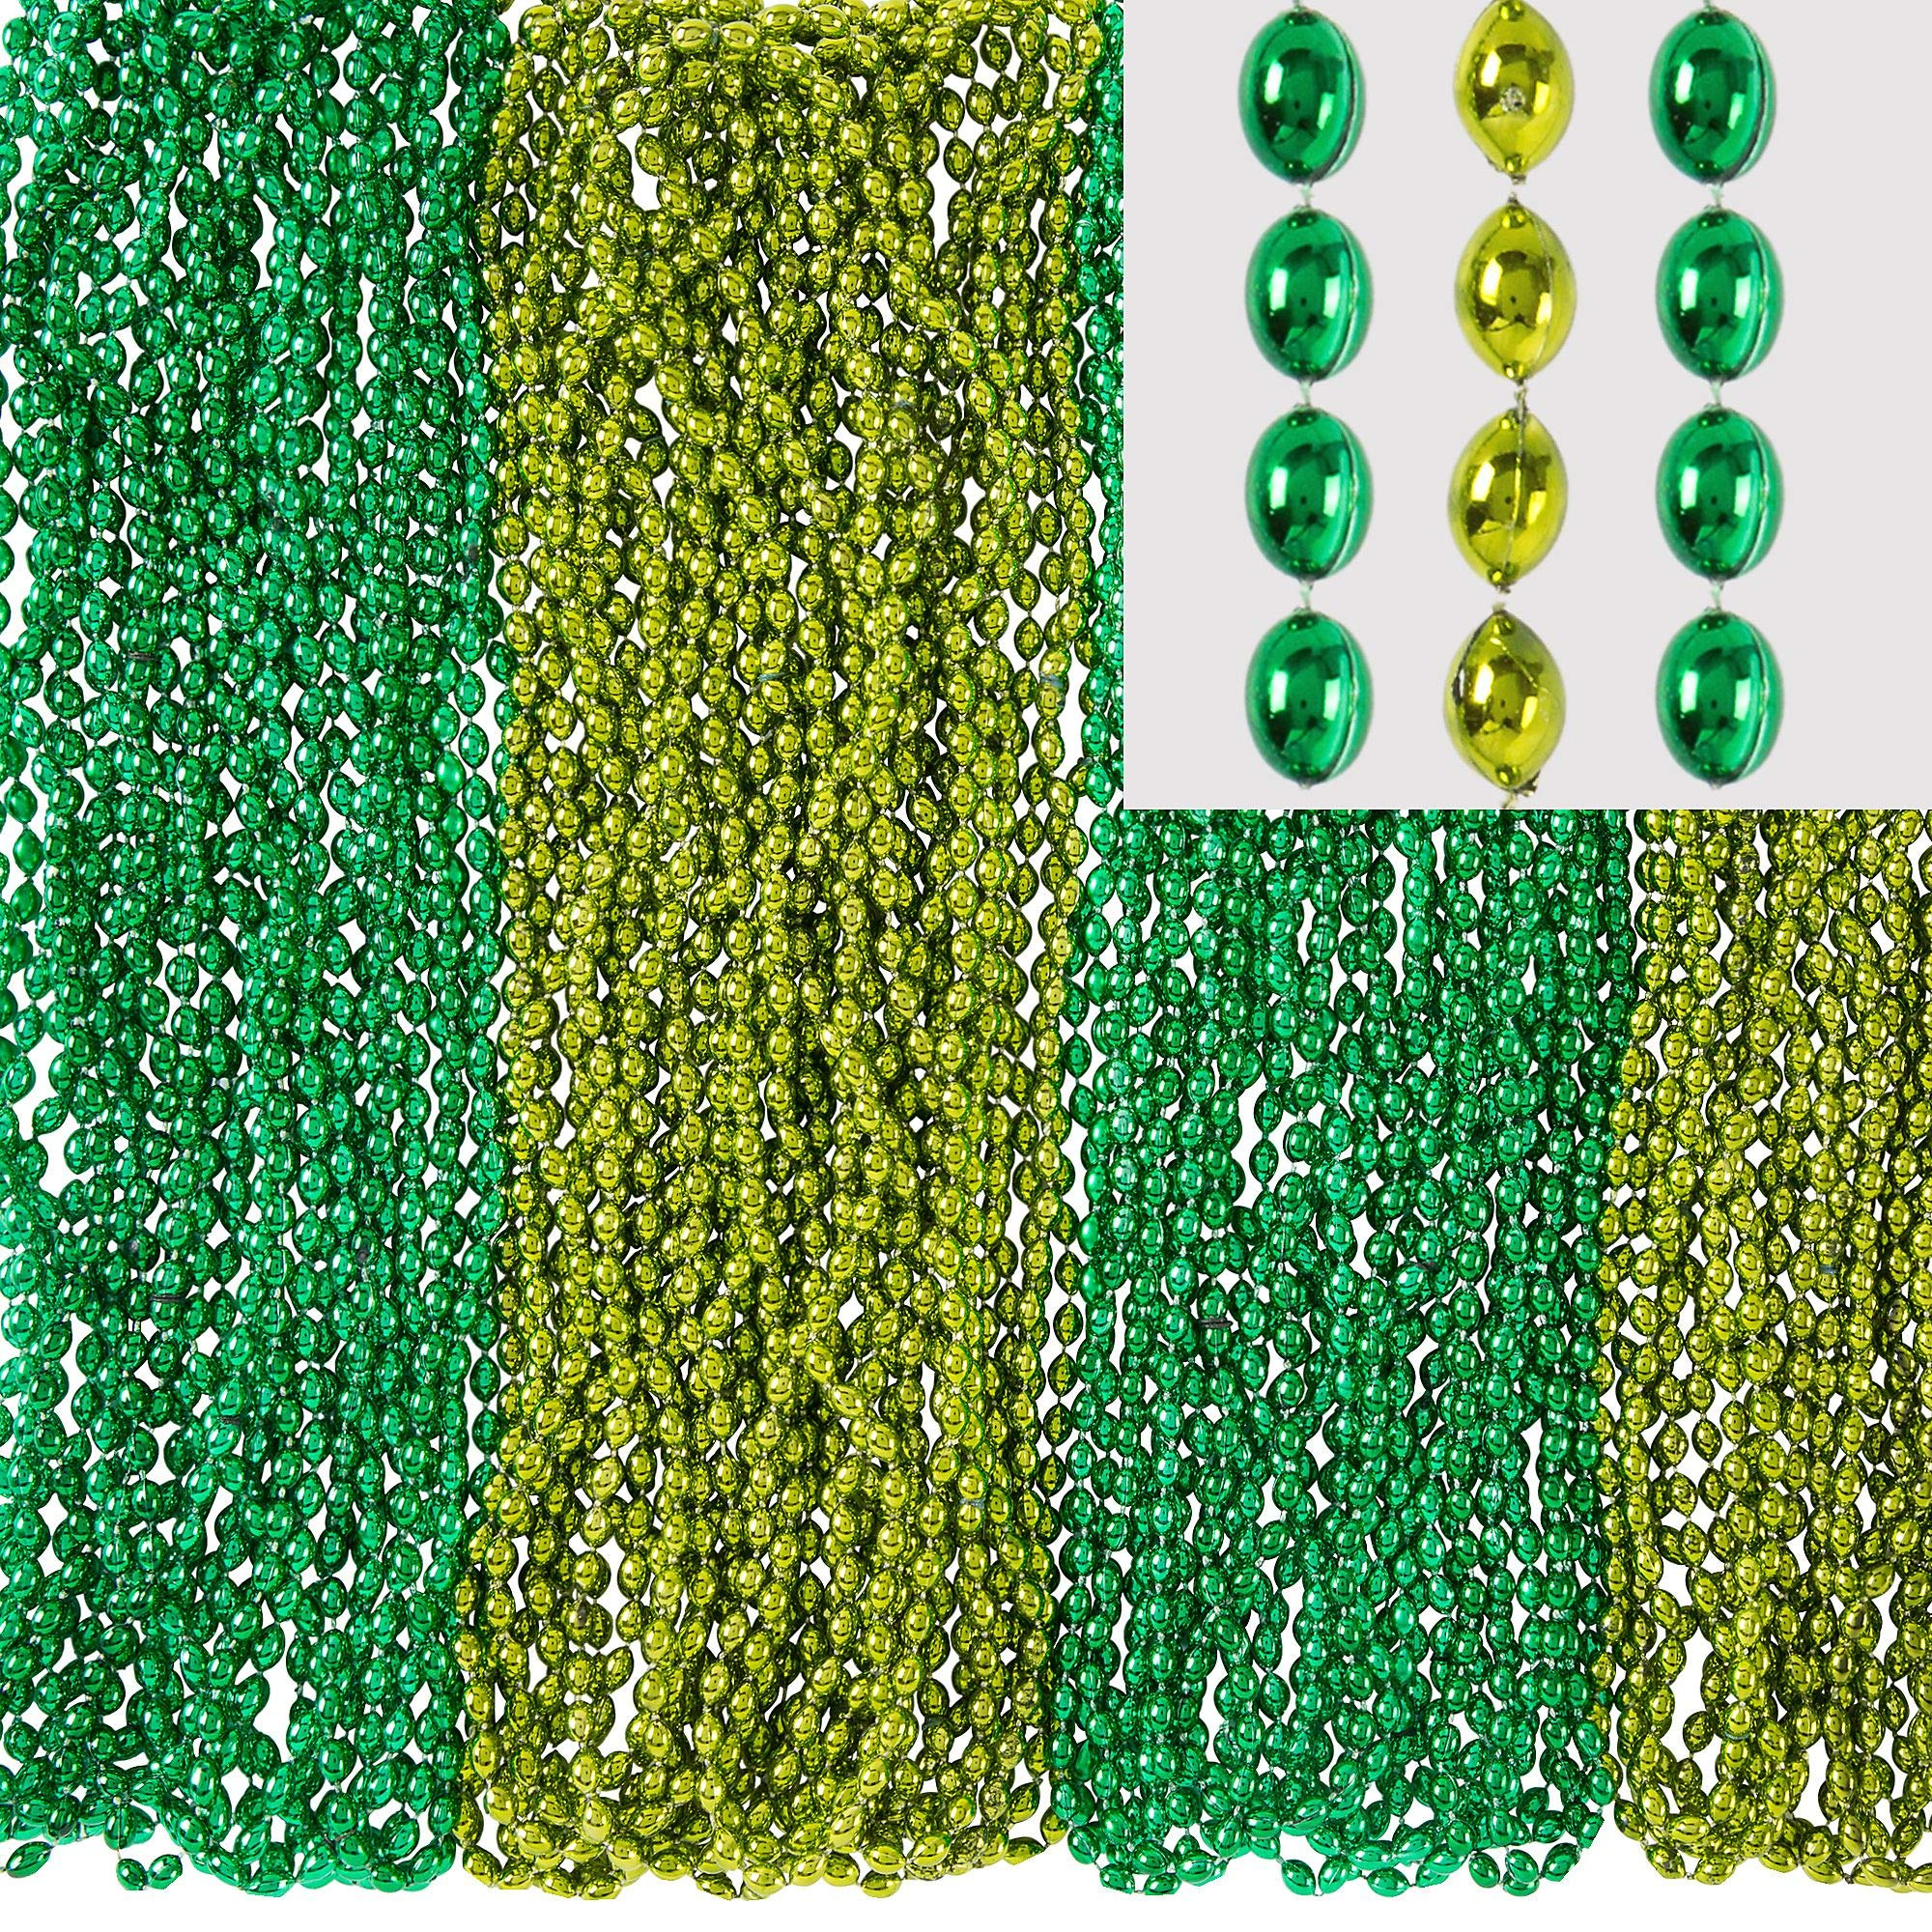 Amscan 393383 Green Bead Necklaces, 7.2 x 5.8 x 5.8'',